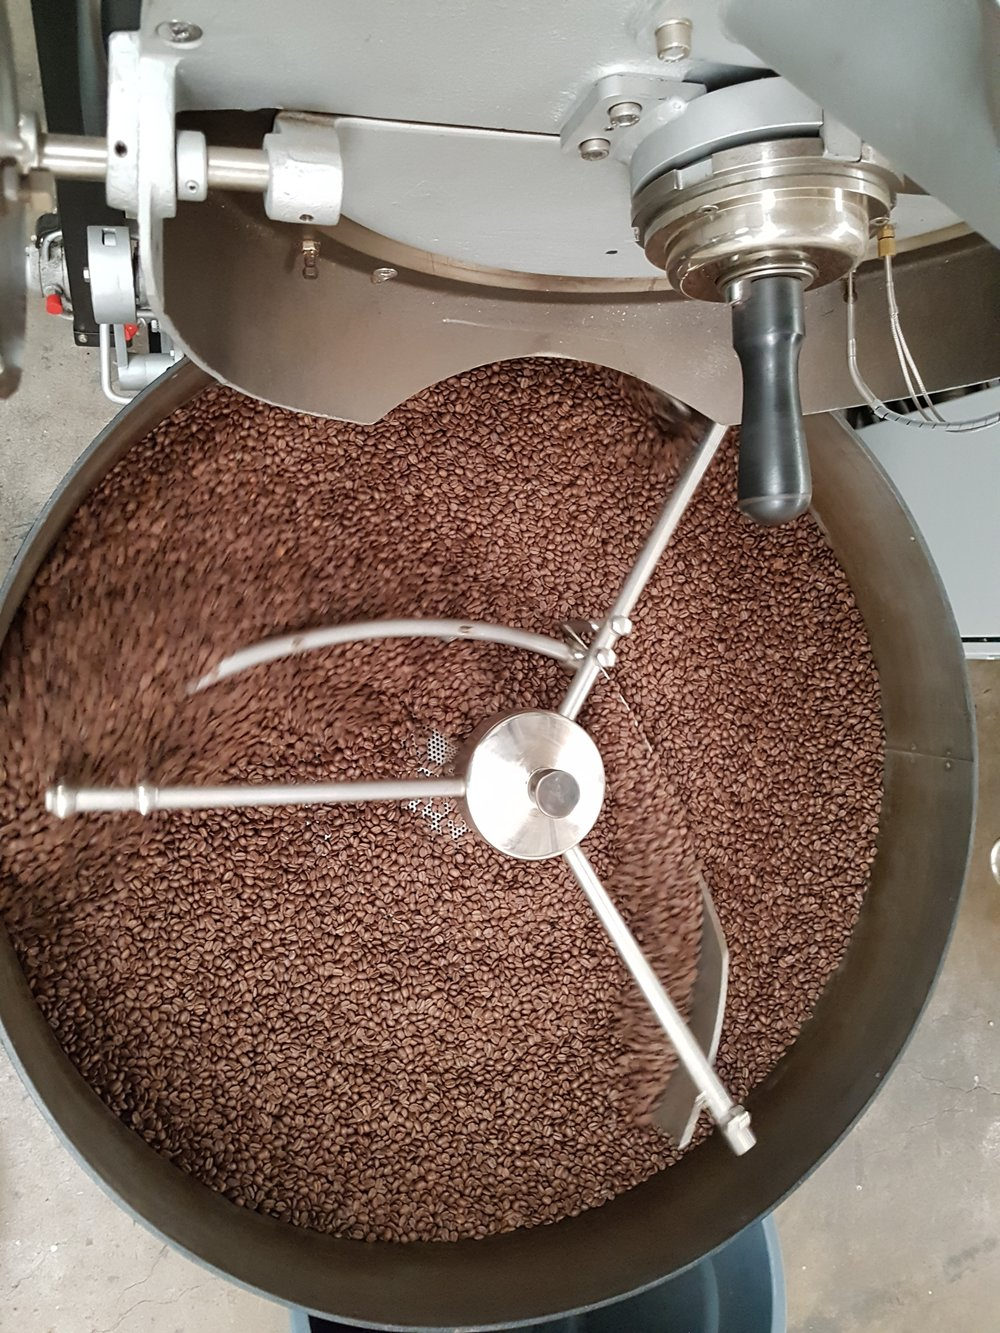 Beautiful brown bean swirl in the cooling tray